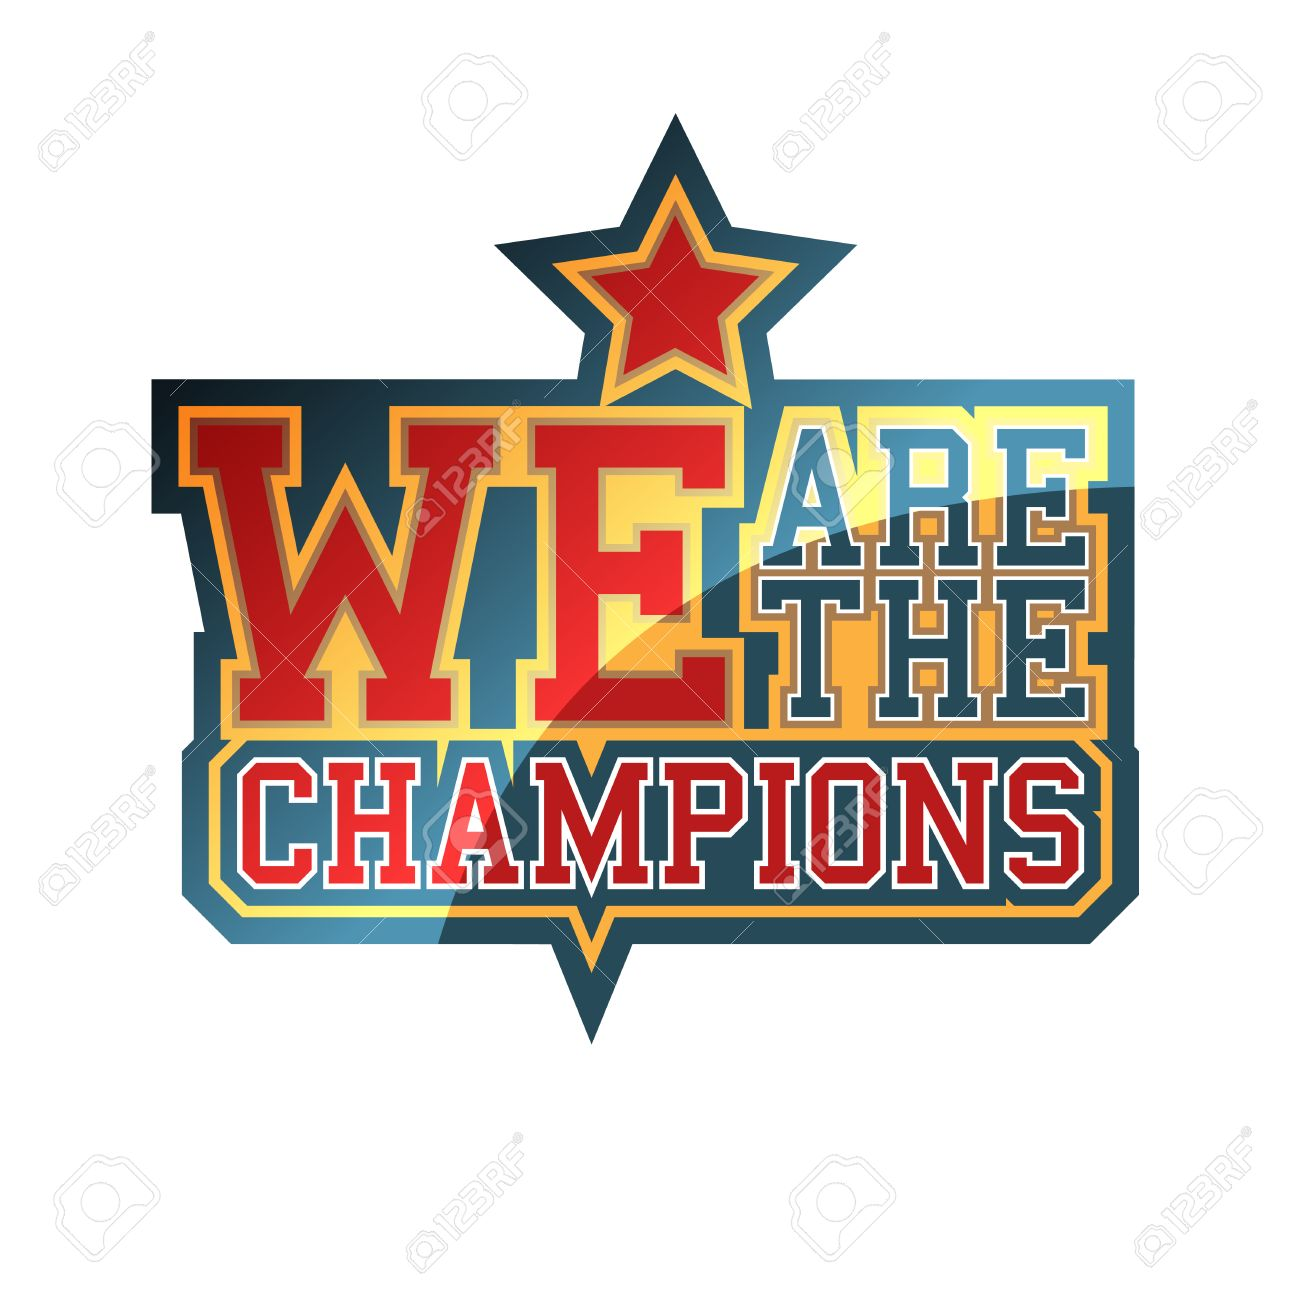 We Are The Champions sign - 27744358